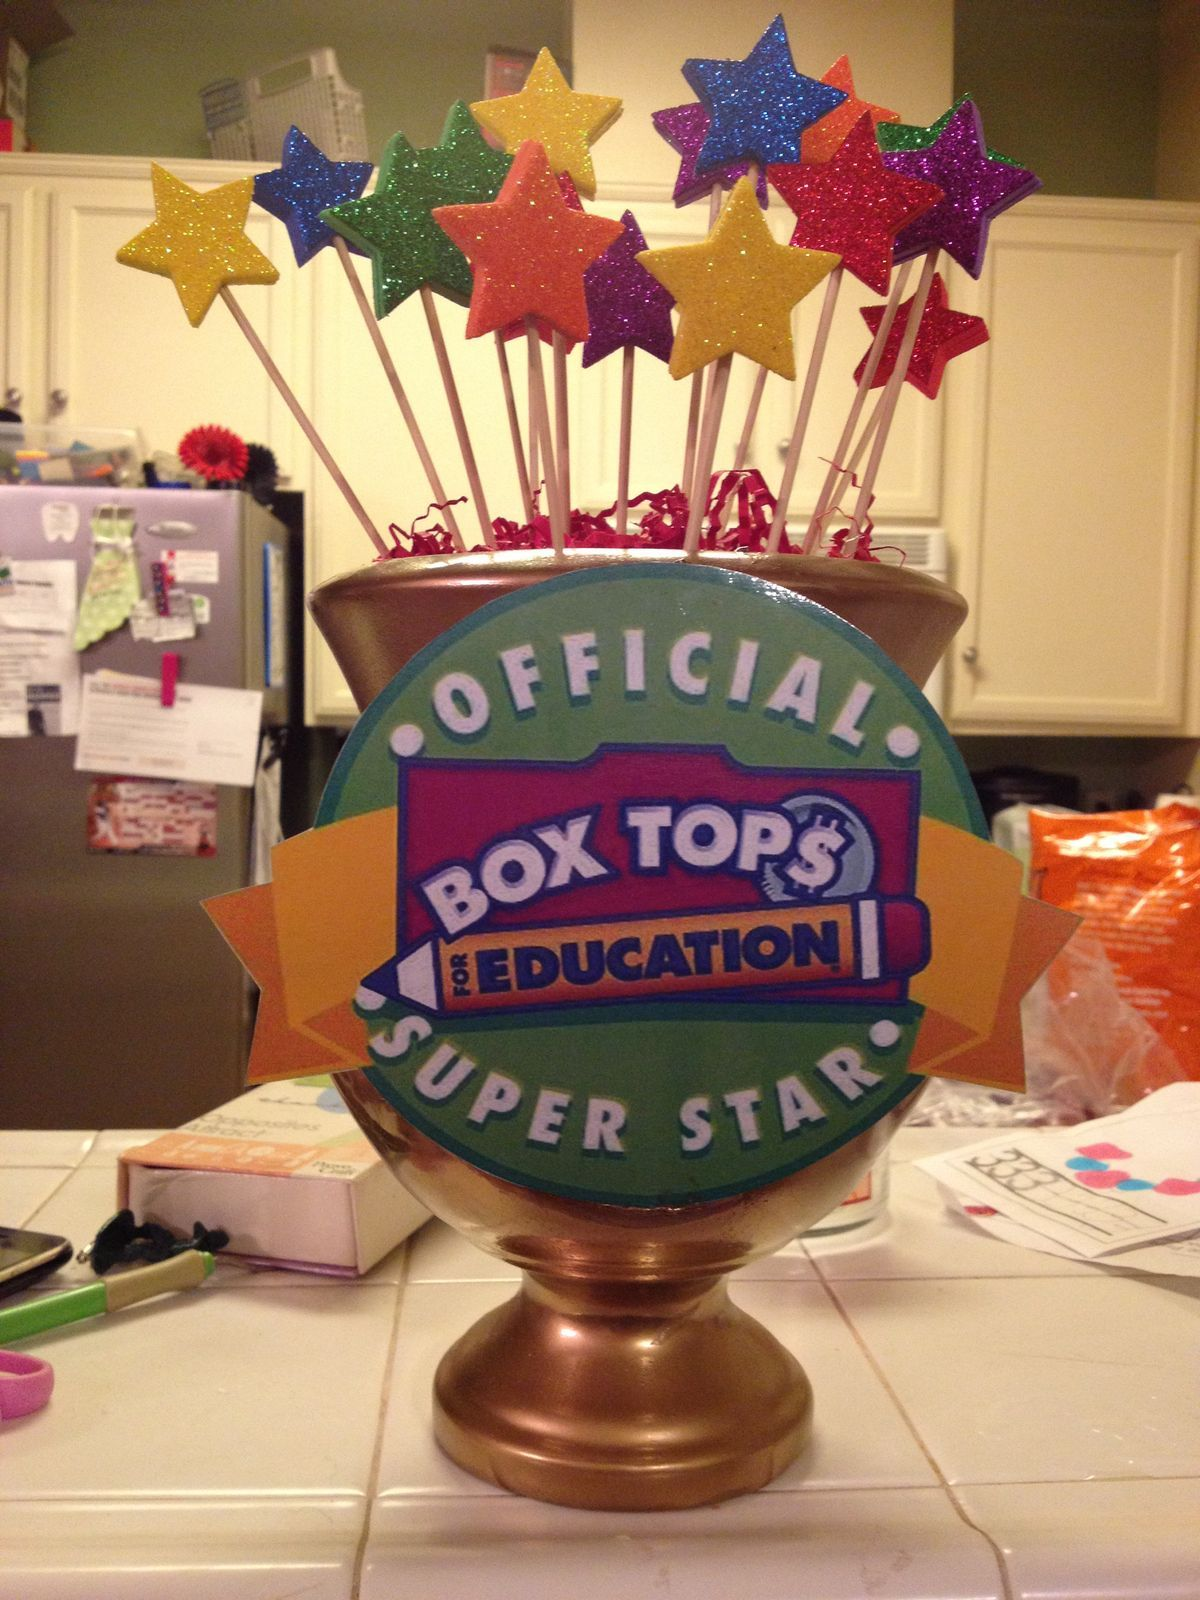 Box Tops Trophy Awarded To Winning Class Who Turns In The Most Box Tops Each Month